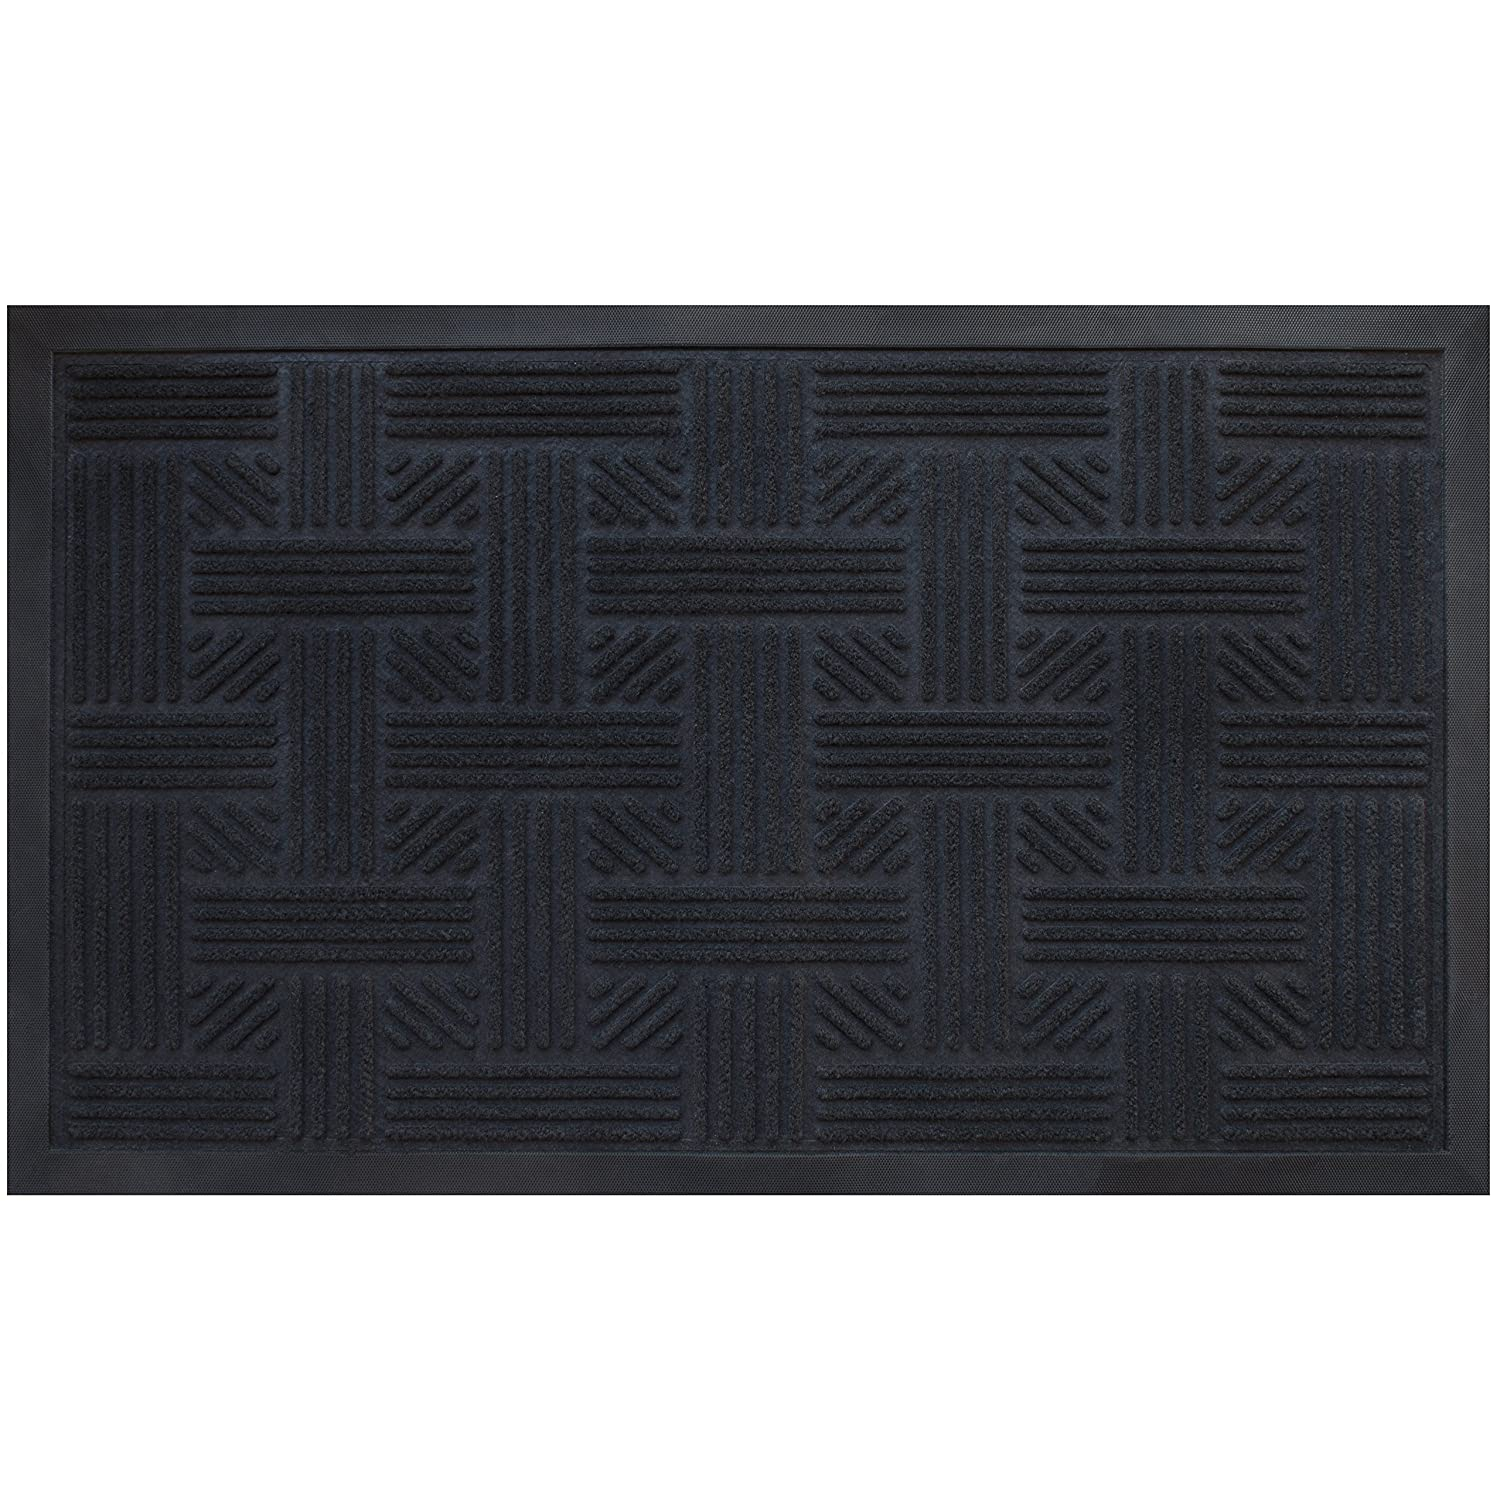 Superbe Amazon.com : Alpine Neighbor Doormat, Low Profile Outdoor, Washable  Cross Hatch, Rubber Front Entrance Floor Shoes Rug, Garage Entry Carpet  Decor For House ...